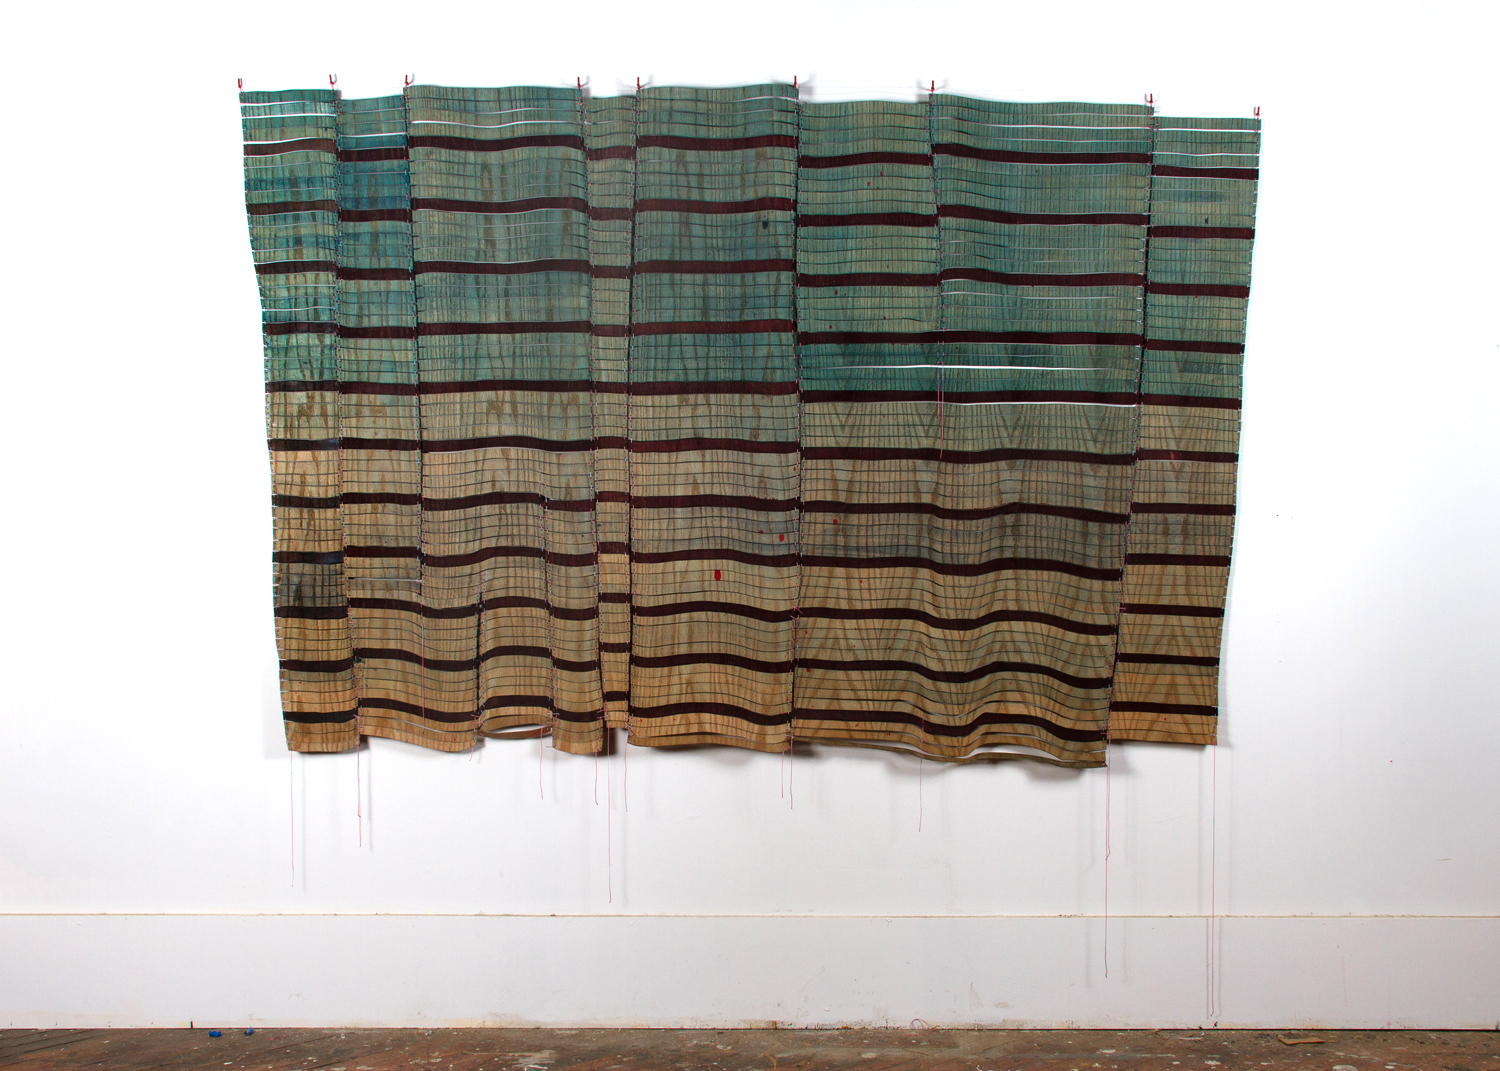 Dan Gunn, Cascade Scales, 2013, dye and polyurethane on plywood with nylon cord, 54 x 84 inches